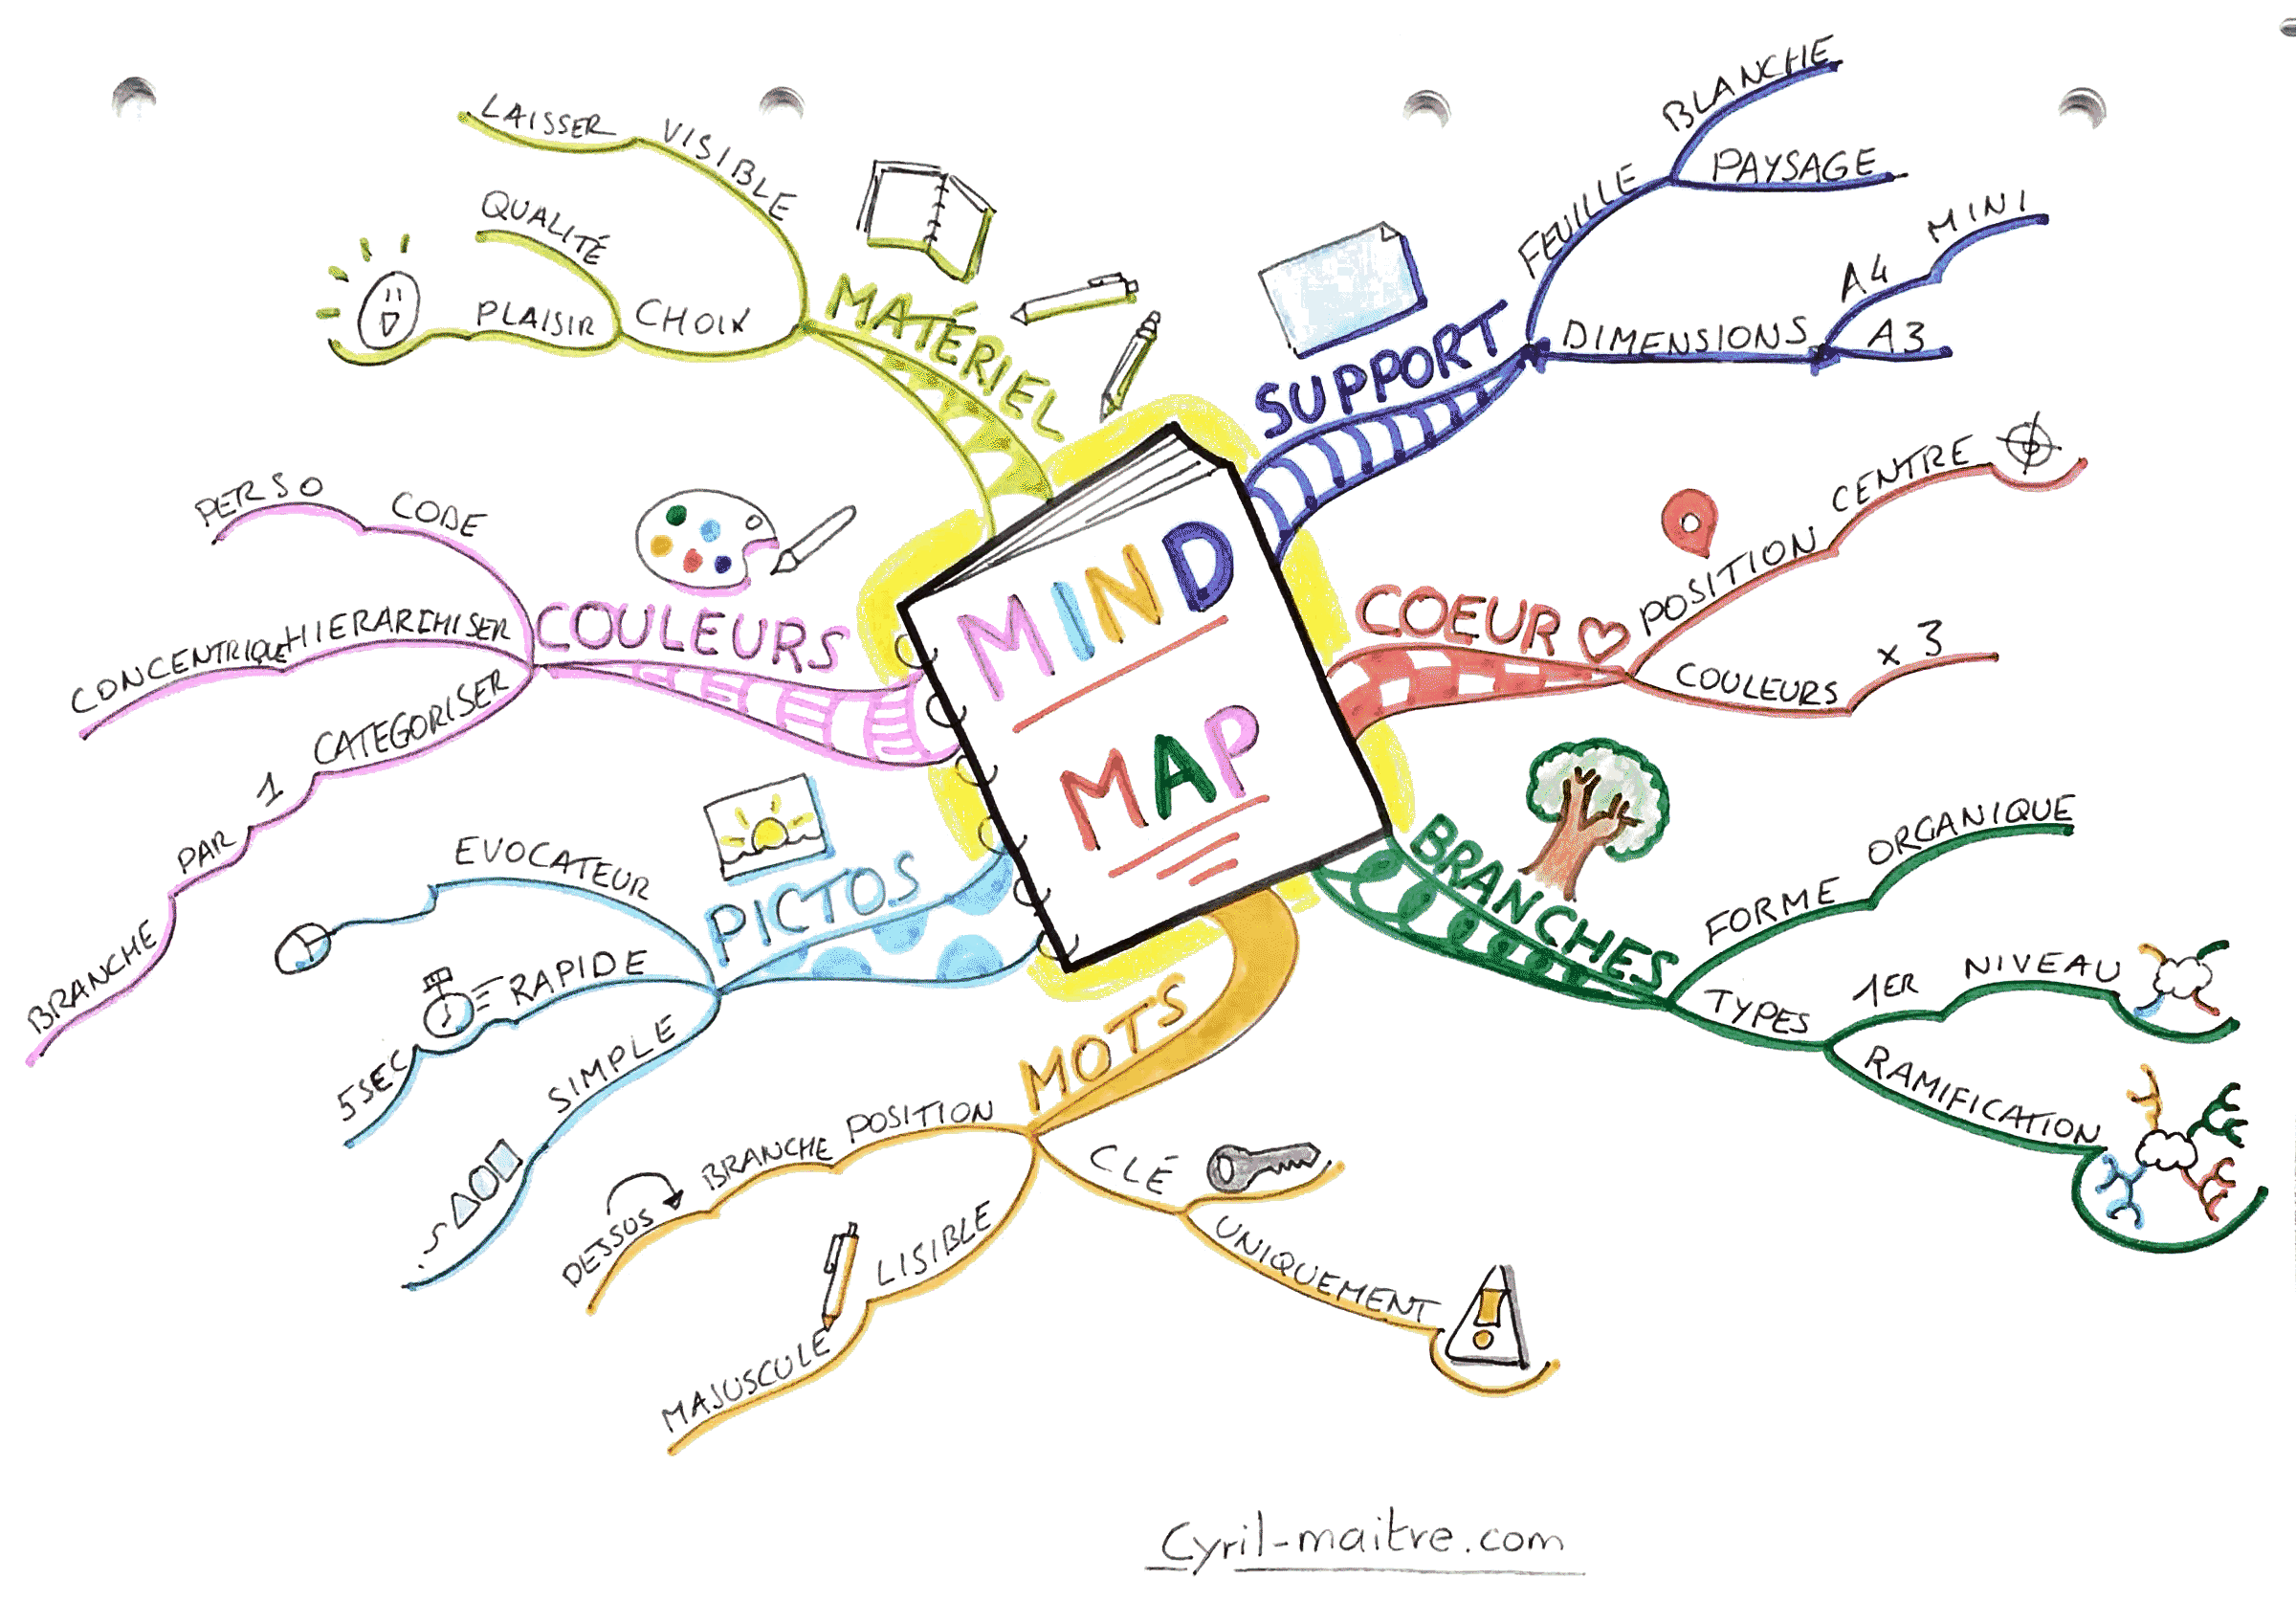 Les règles de construction d'un mind map